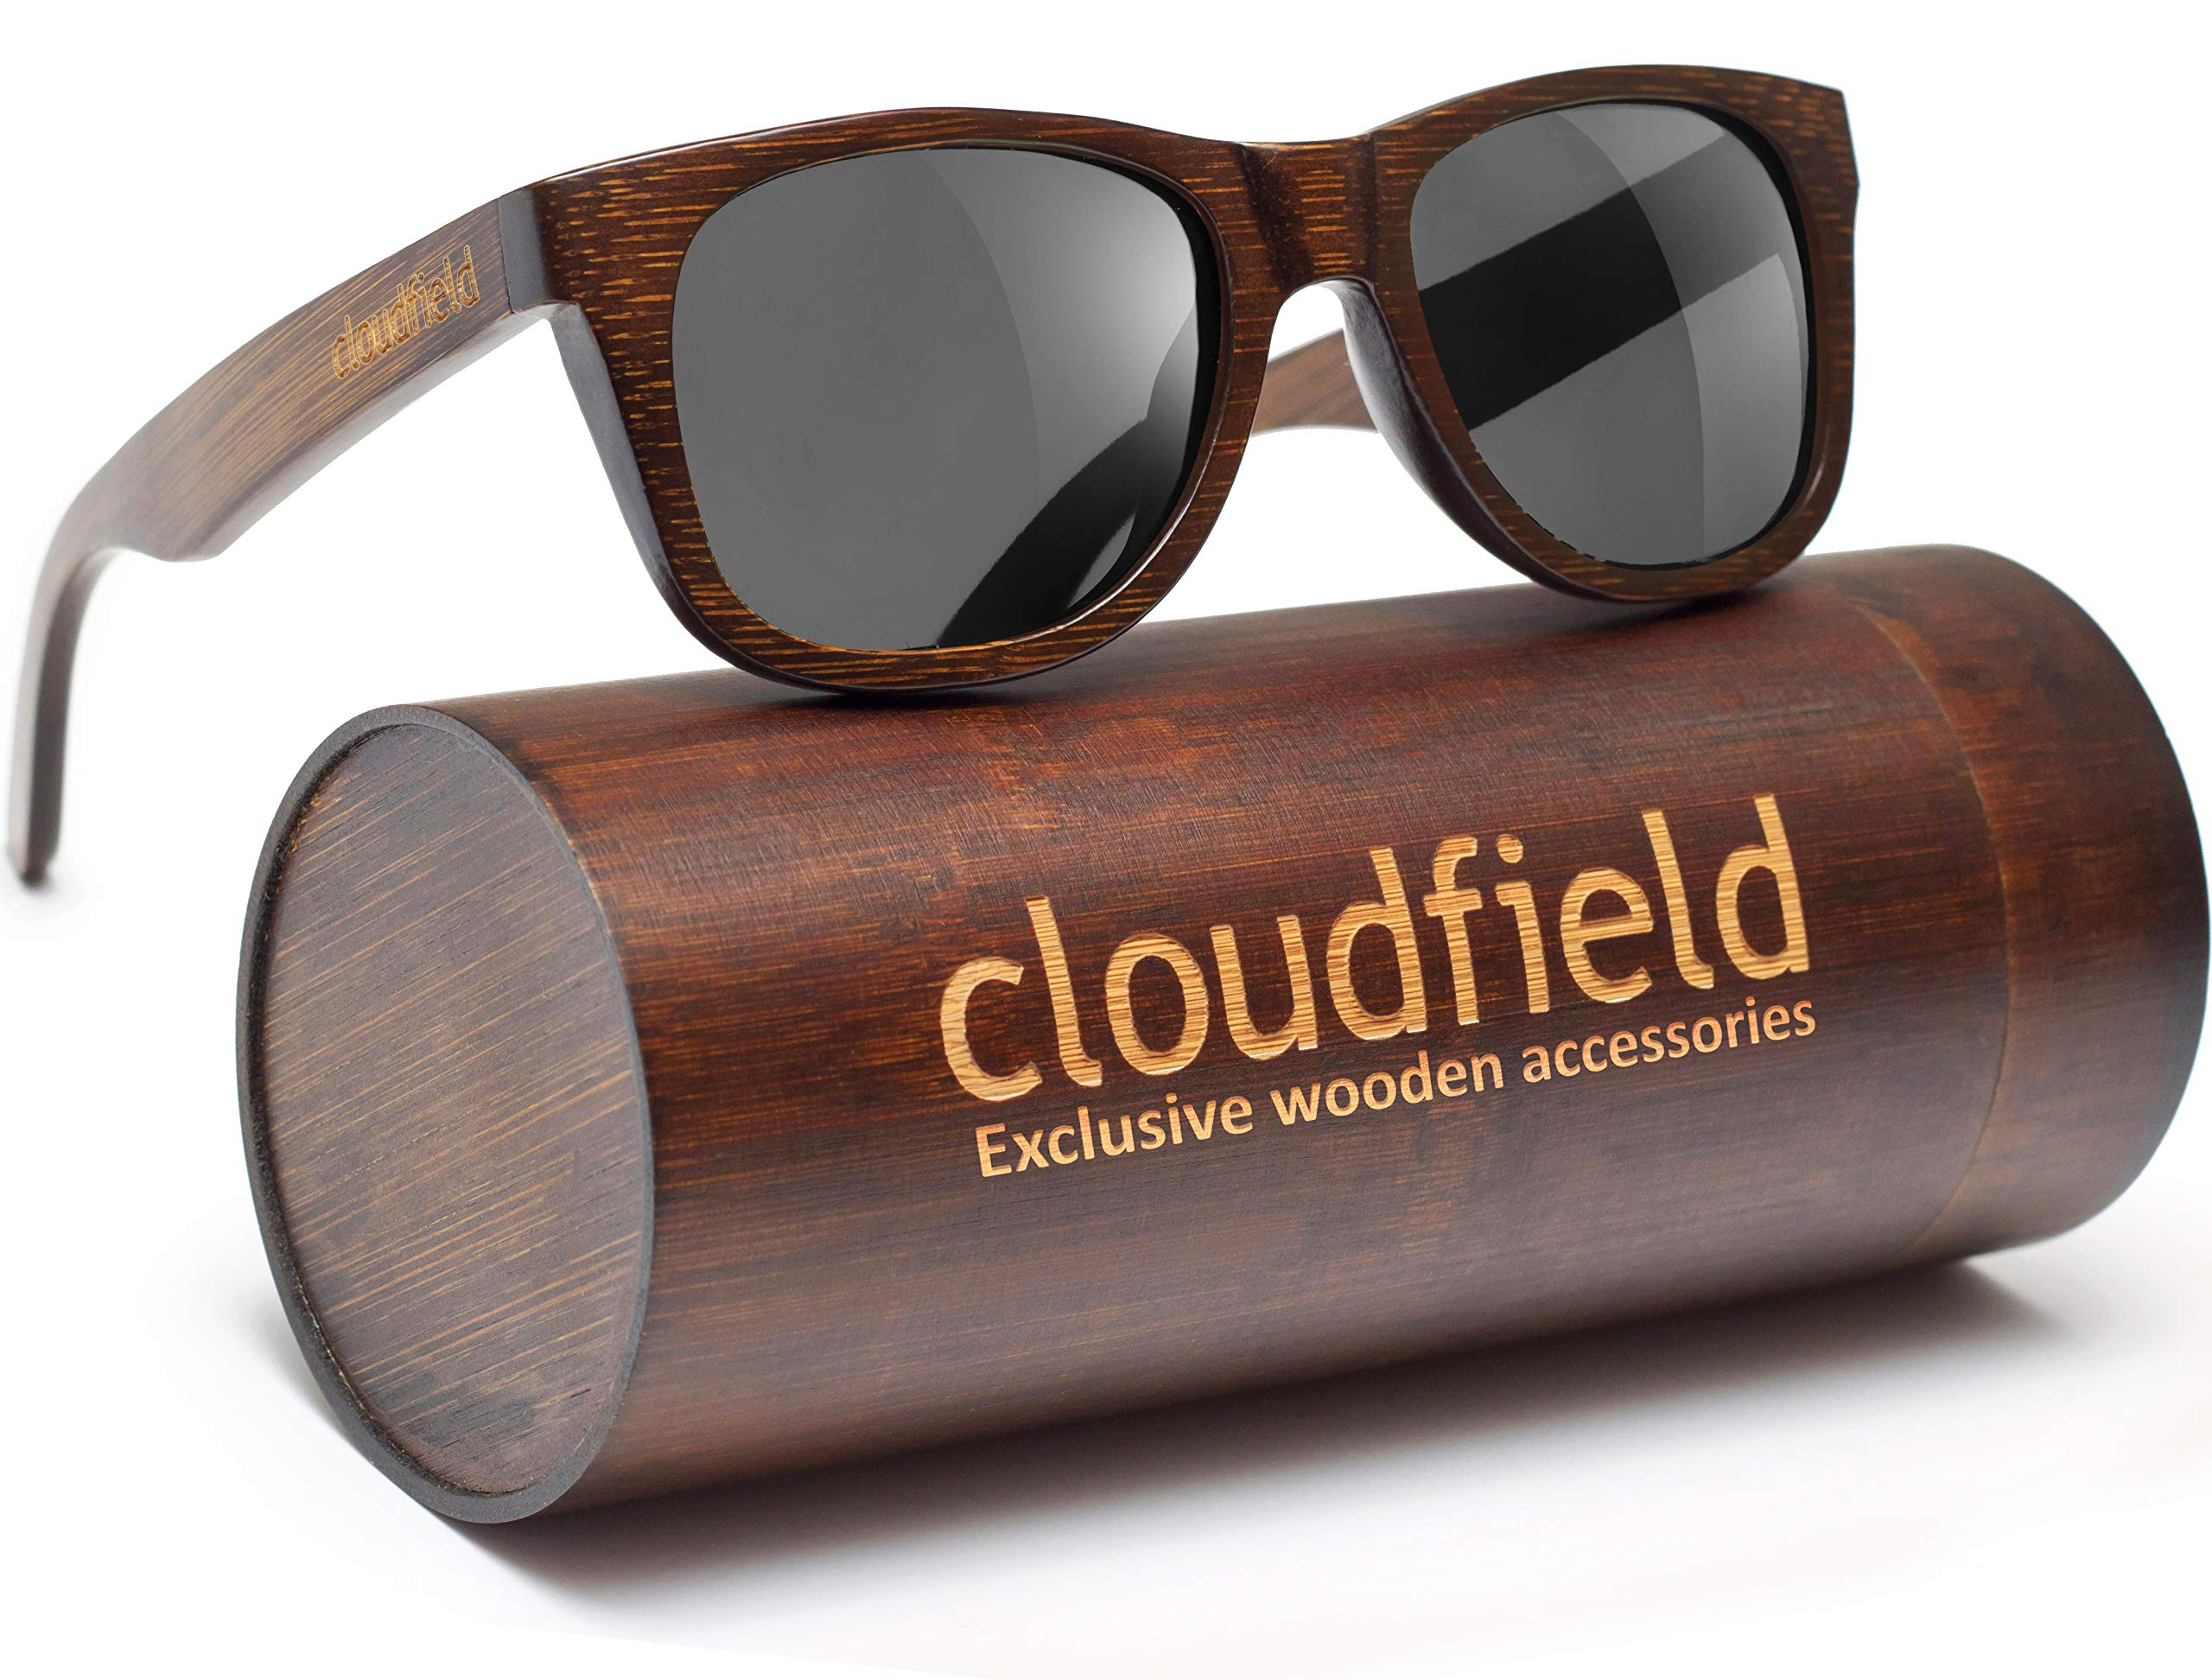 Wood Sunglasses Polarized for Men and Women - Bamboo Wooden sunglasses by cloudfield